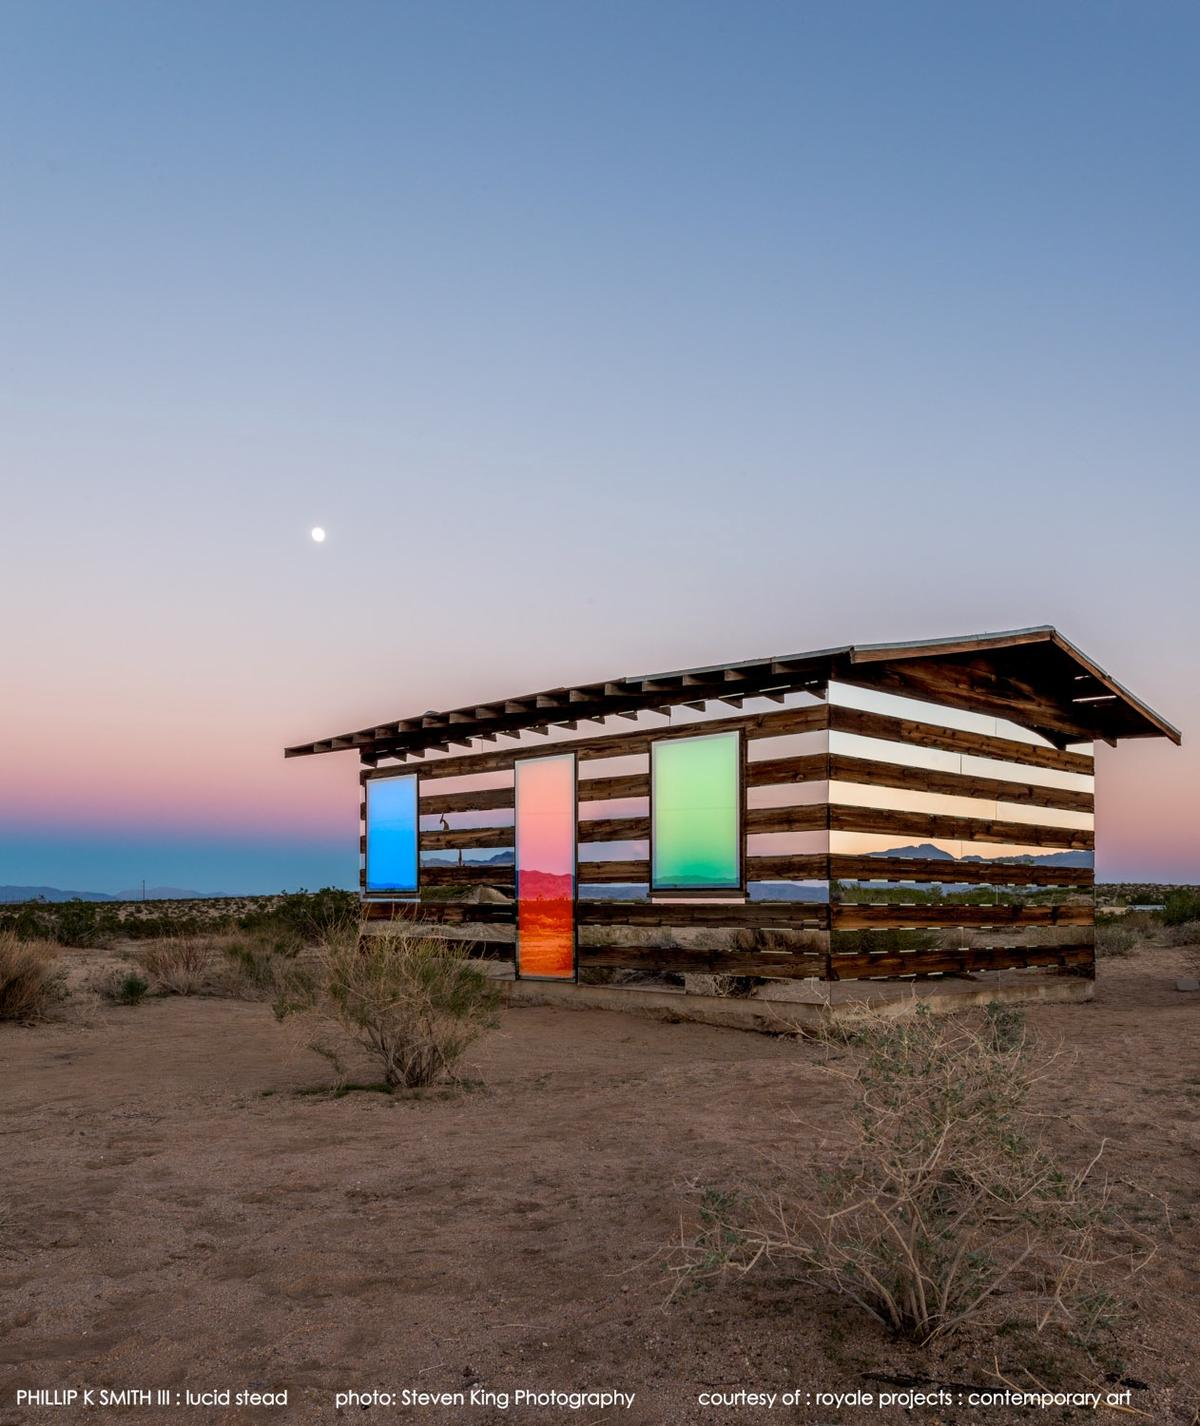 The Lucid Stead is based in Joshua Tree, San Bernadino County, California (Photo: Steve King/royale projects : contemporary art)